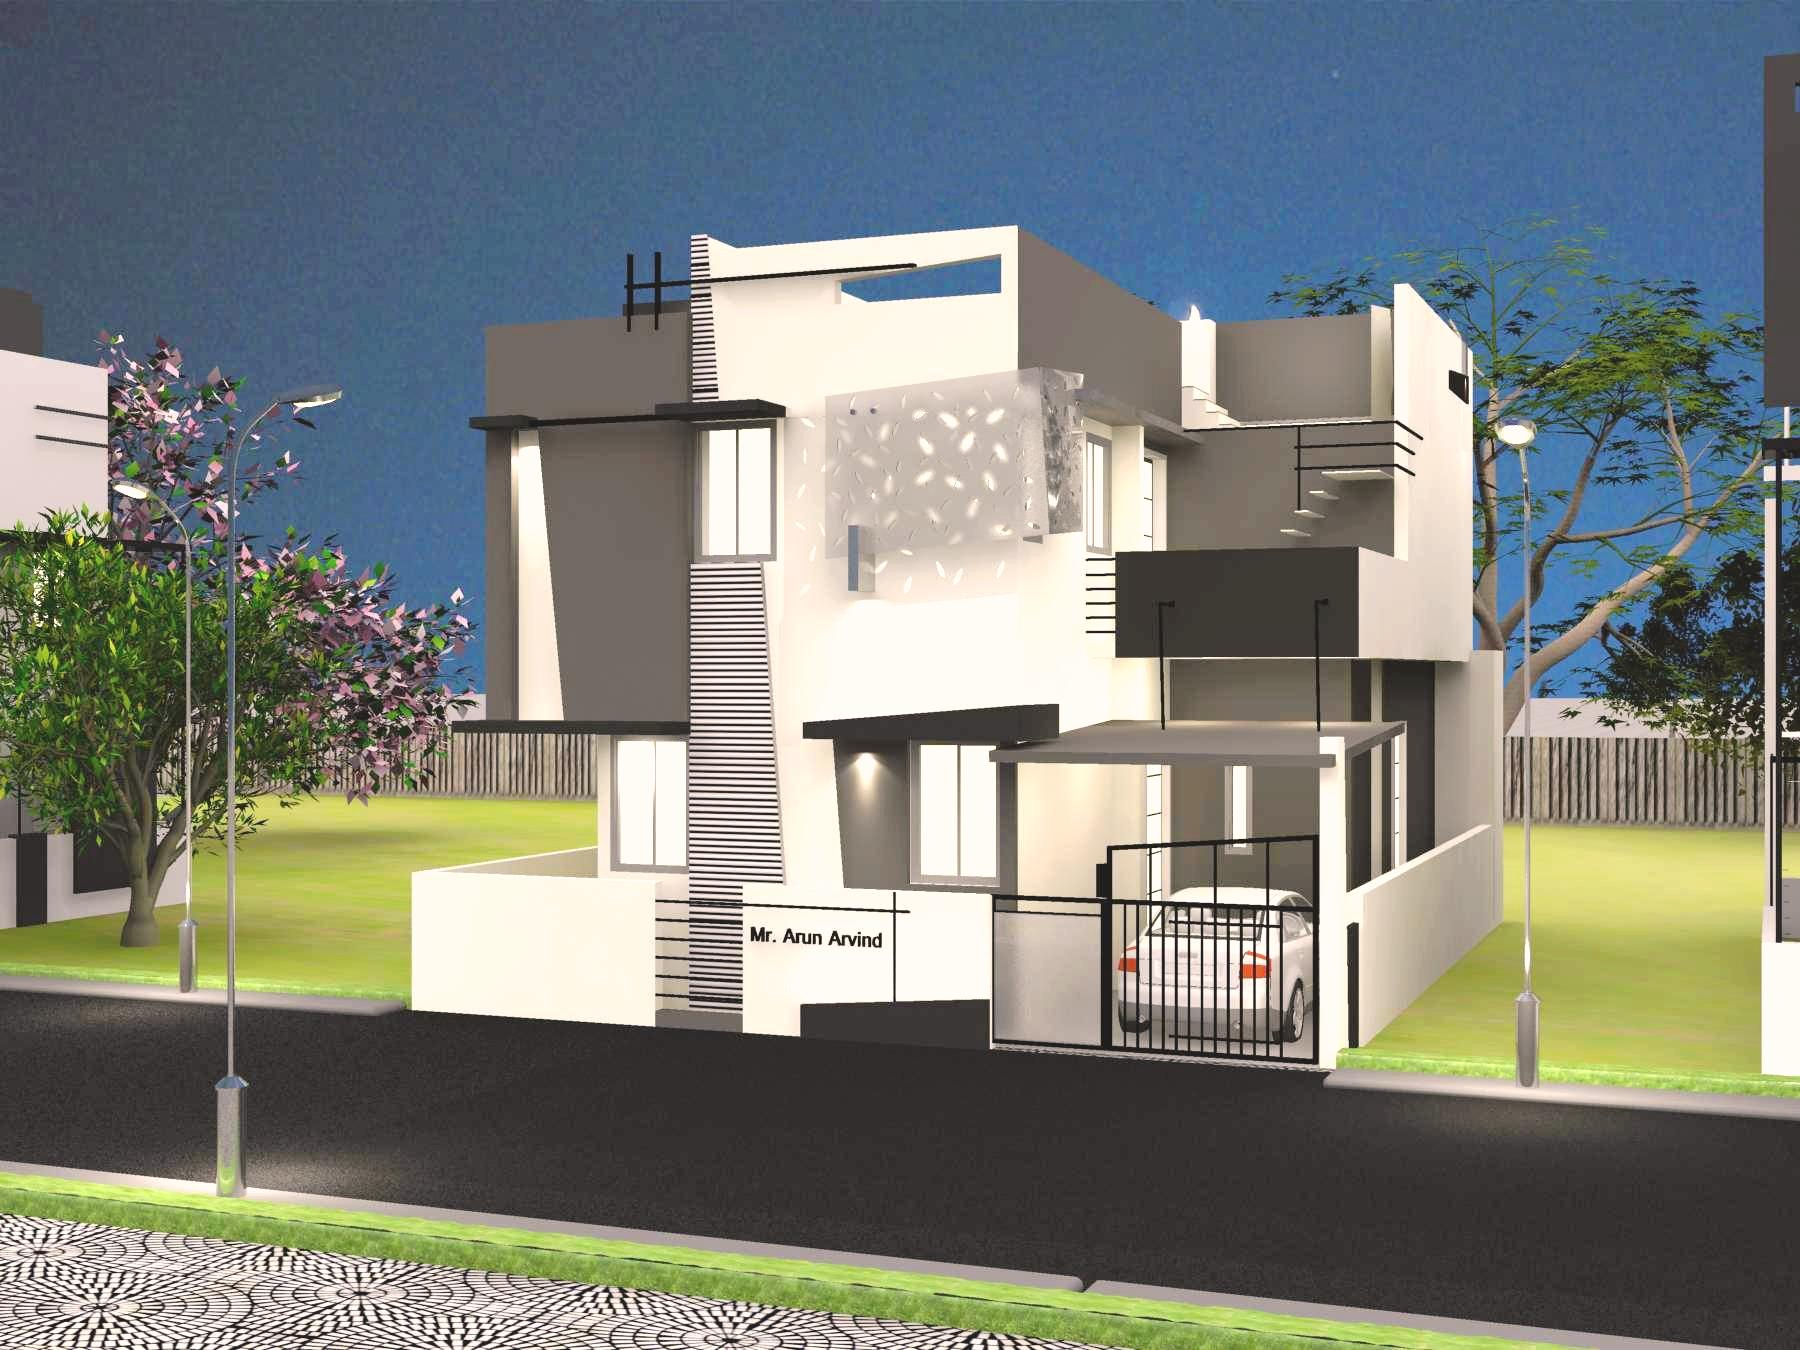 Architecture house designs commercial construction bangalore india